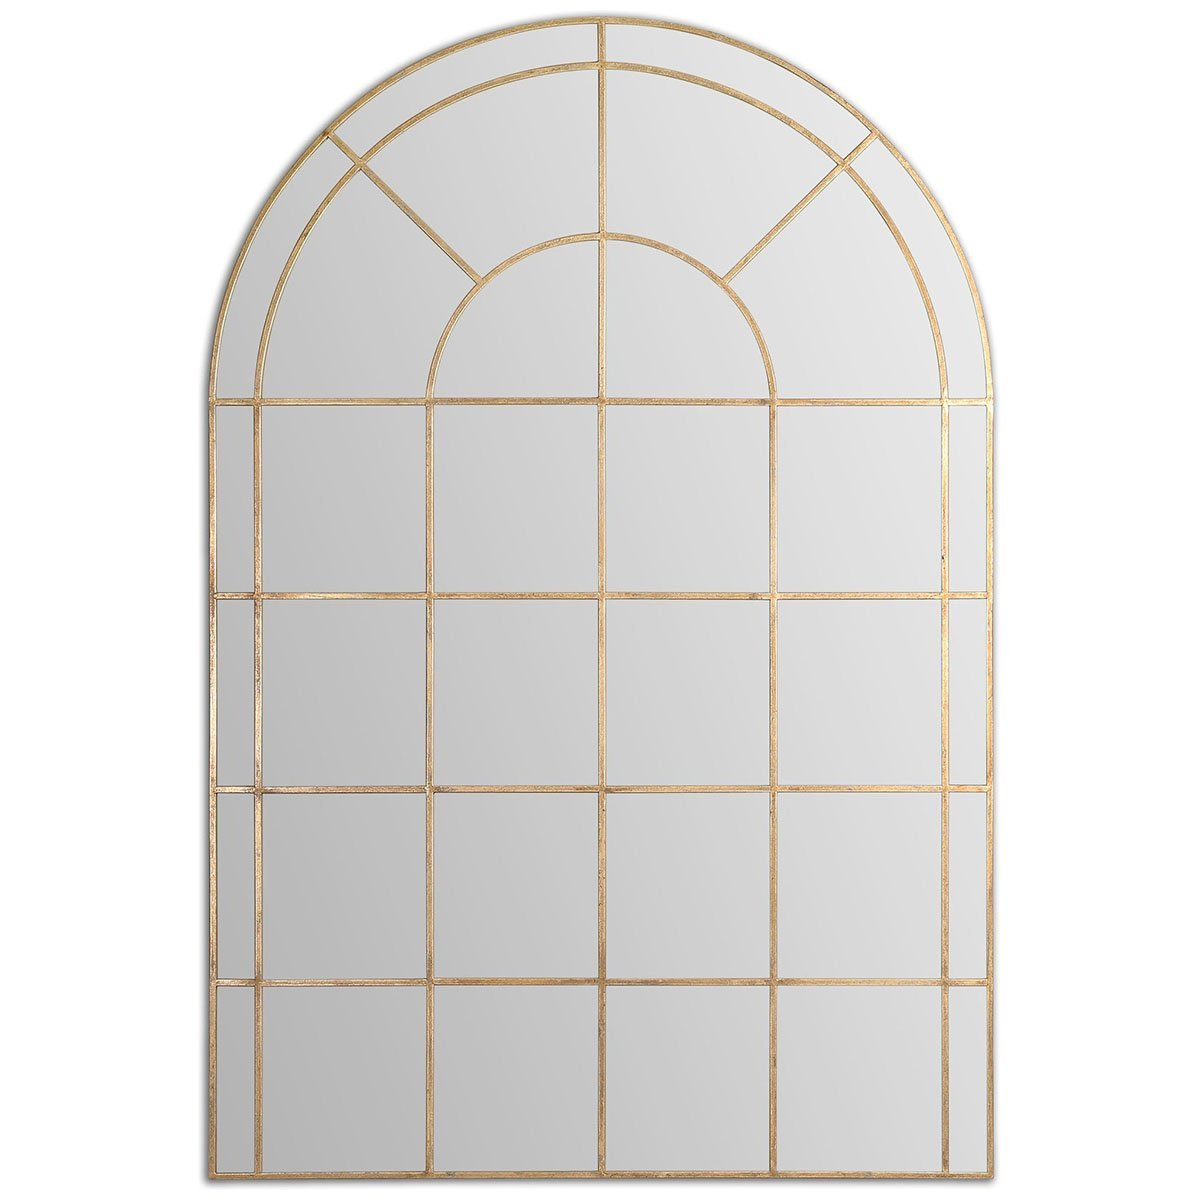 Wall Mirror with Shutters | Windowpane Mirror | Arched Window Pane Mirror